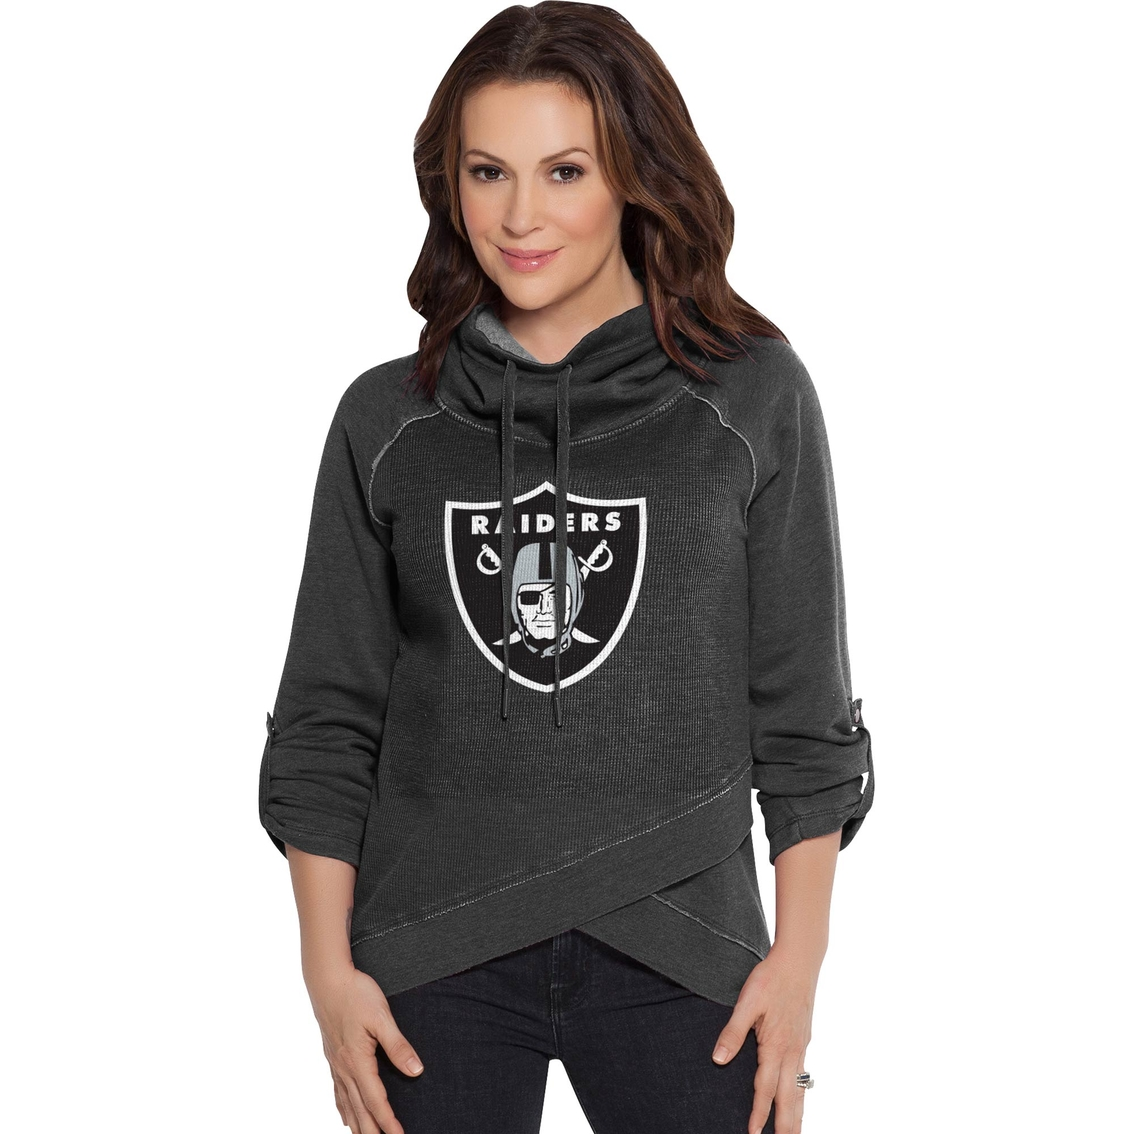 check out 3b8a7 90363 Touch By Alyssa Milano Nfl Oakland Raiders Women's Wildcard ...